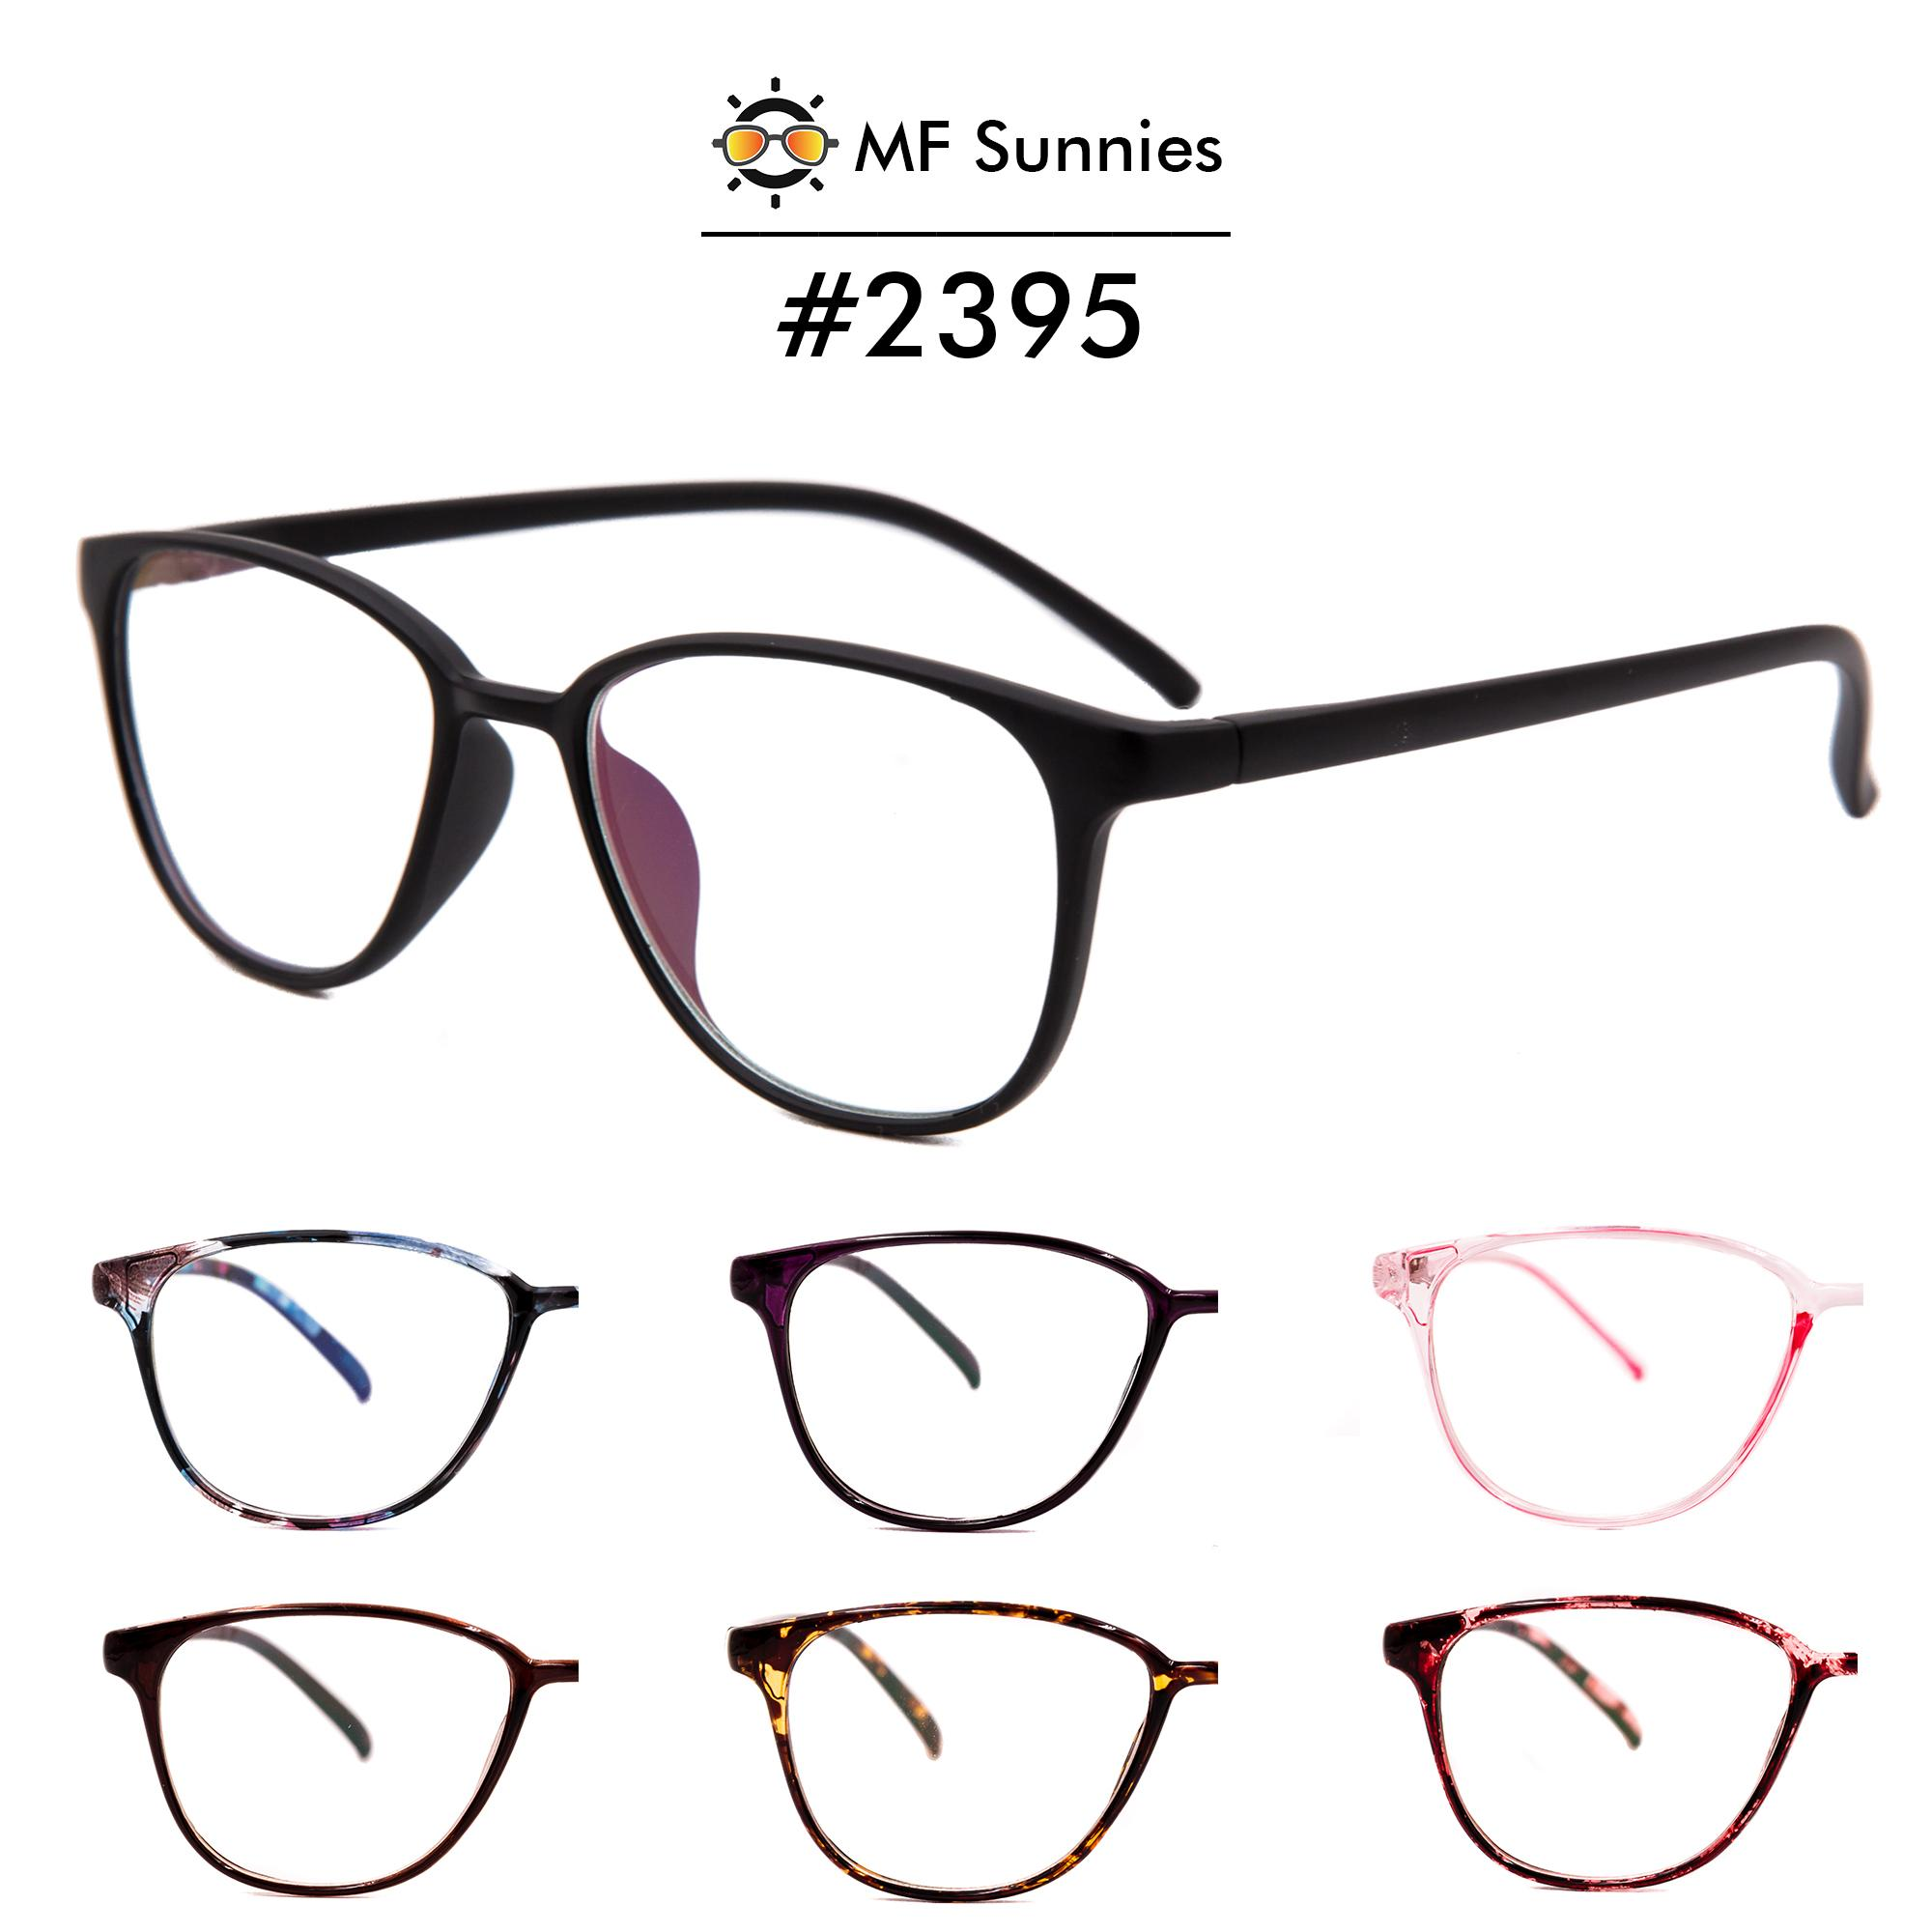 8fe98f3dec8e MFSunnies Computer Anti Blue light Radiation Eyewear High quality frame  Premium Acetate material Metal Hinges